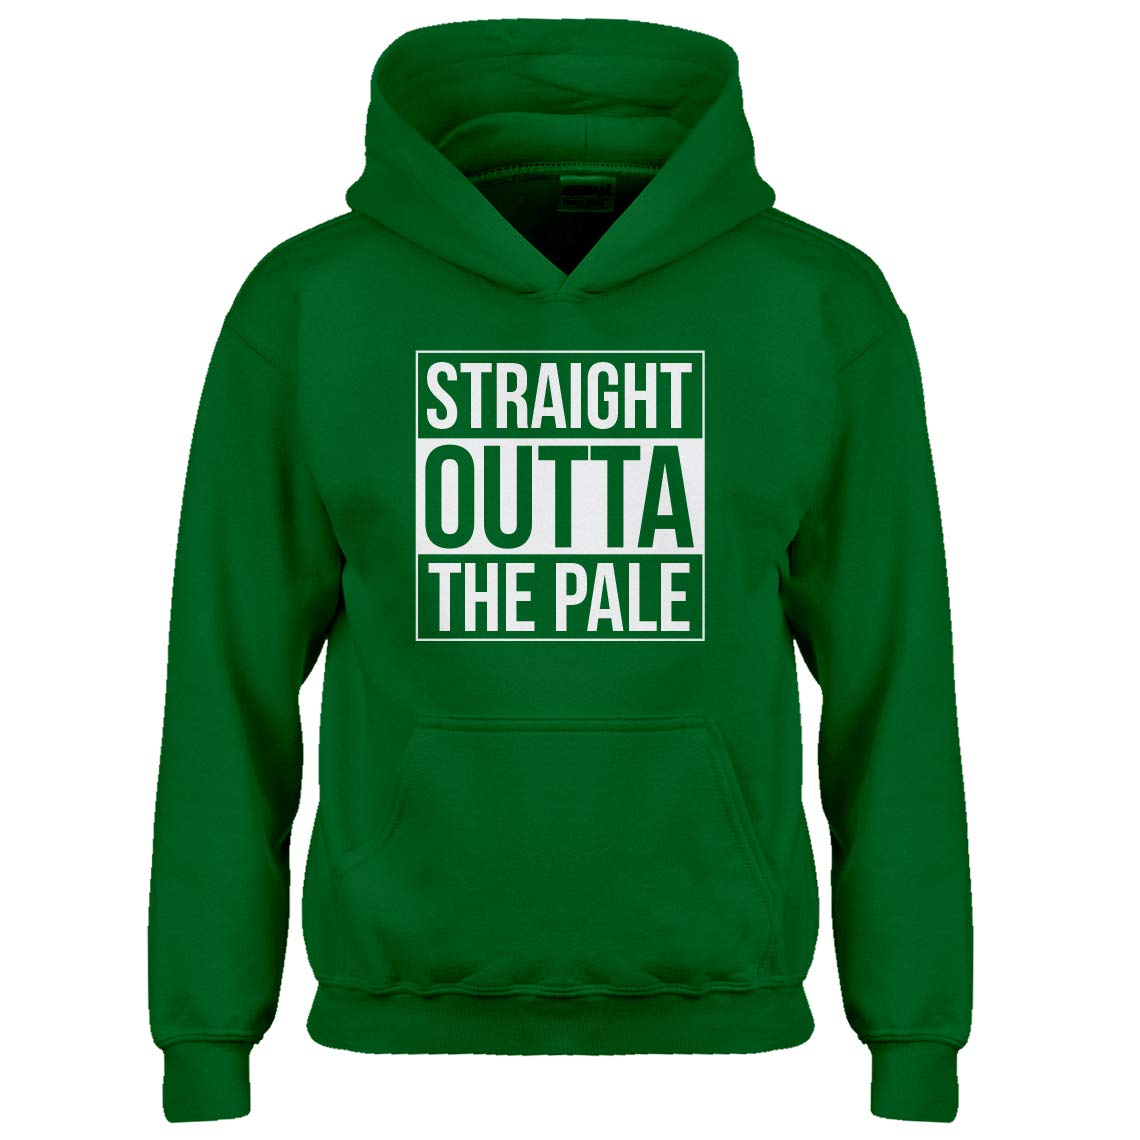 Straight Outta The Pale 6724 Shirts